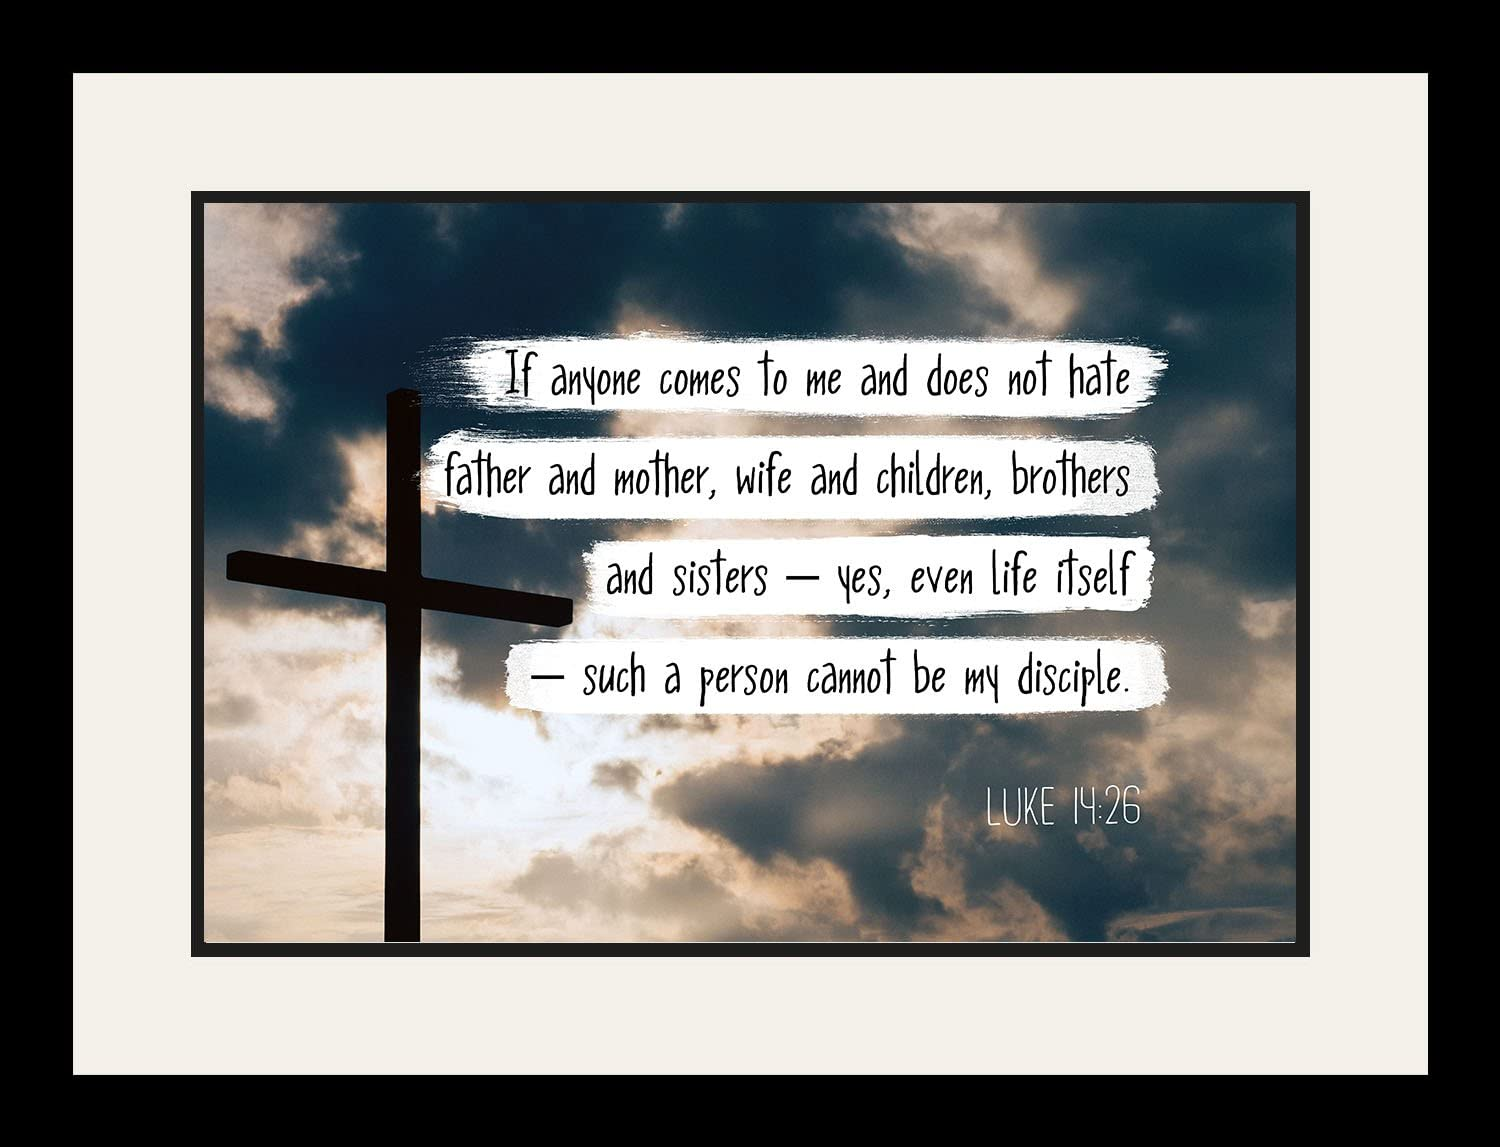 Amazon.com: WeSellPhotos Luke 14:26 If Anyone Comes to me - Christian  Poster, Print, Picture or Framed Wall Art Decor - Bible Verse Collection -  Religious Gift for Holidays Christmas Baptism (19x25 Framed):